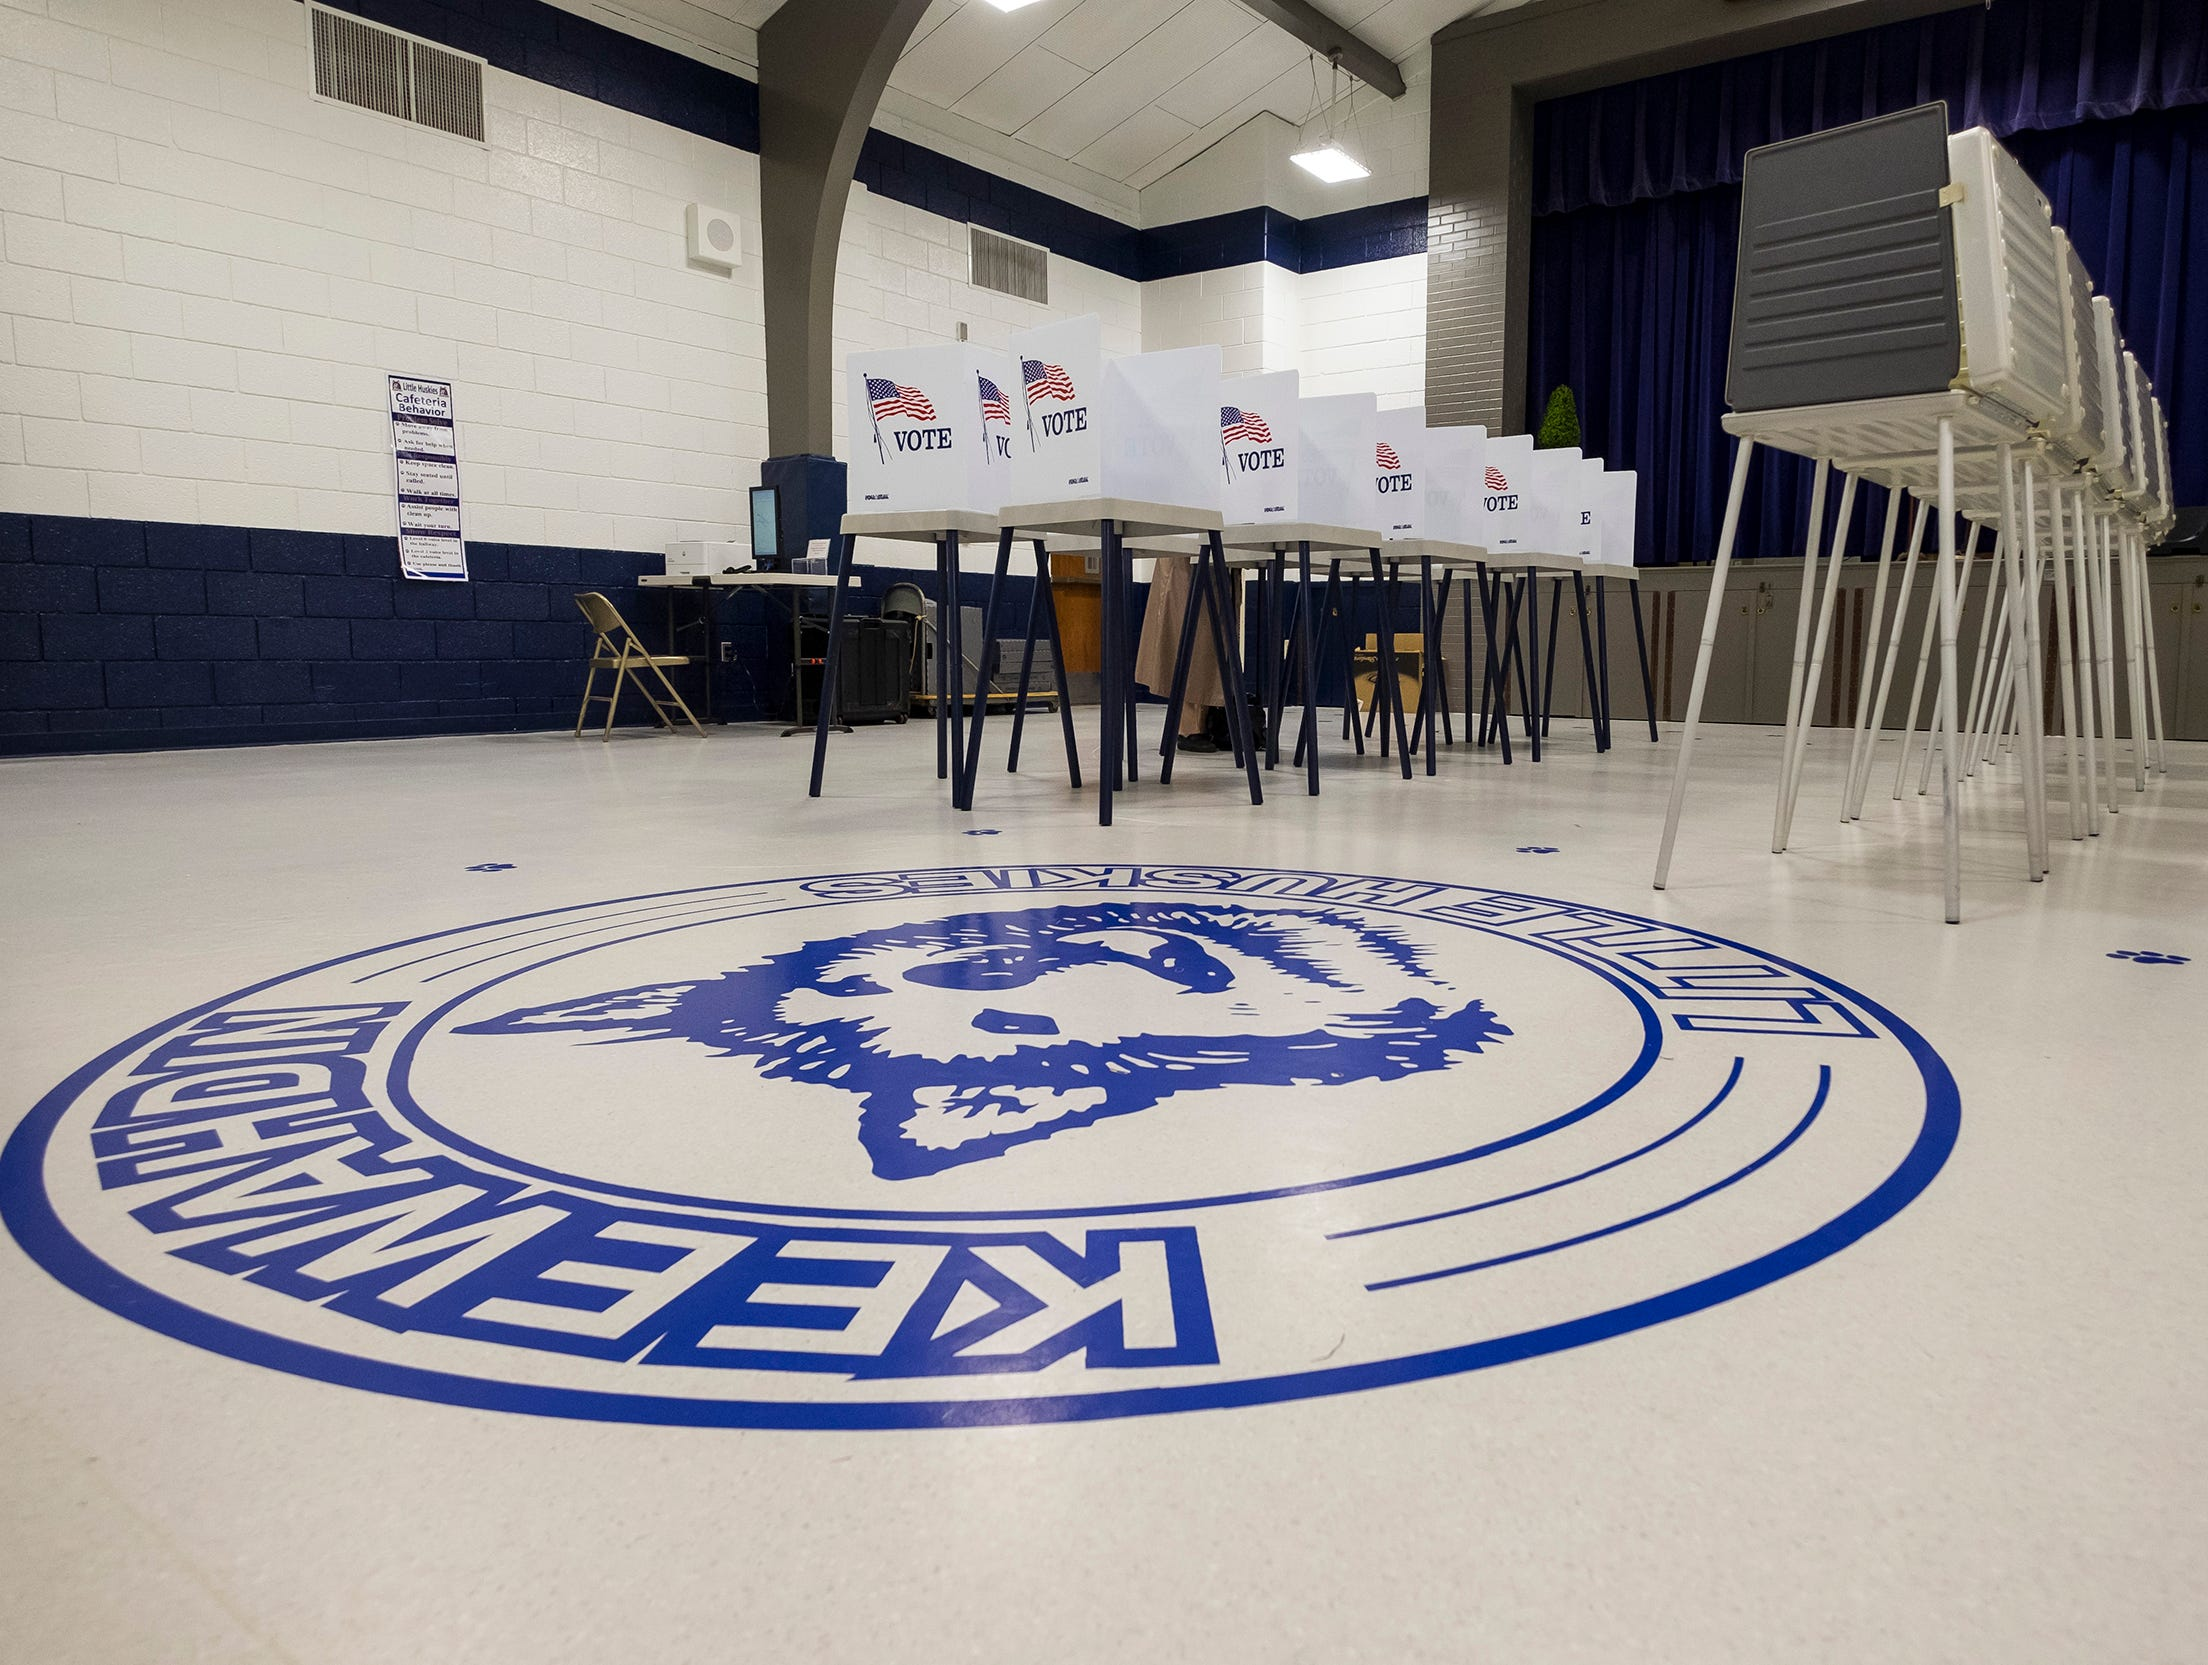 Empty voting booths fill the gymnasium at Keewahdin Elementary Tuesday, Nov. 6, 2018 during mid-term elections. The school was the voting location for Fort Gratiot precinct 1.